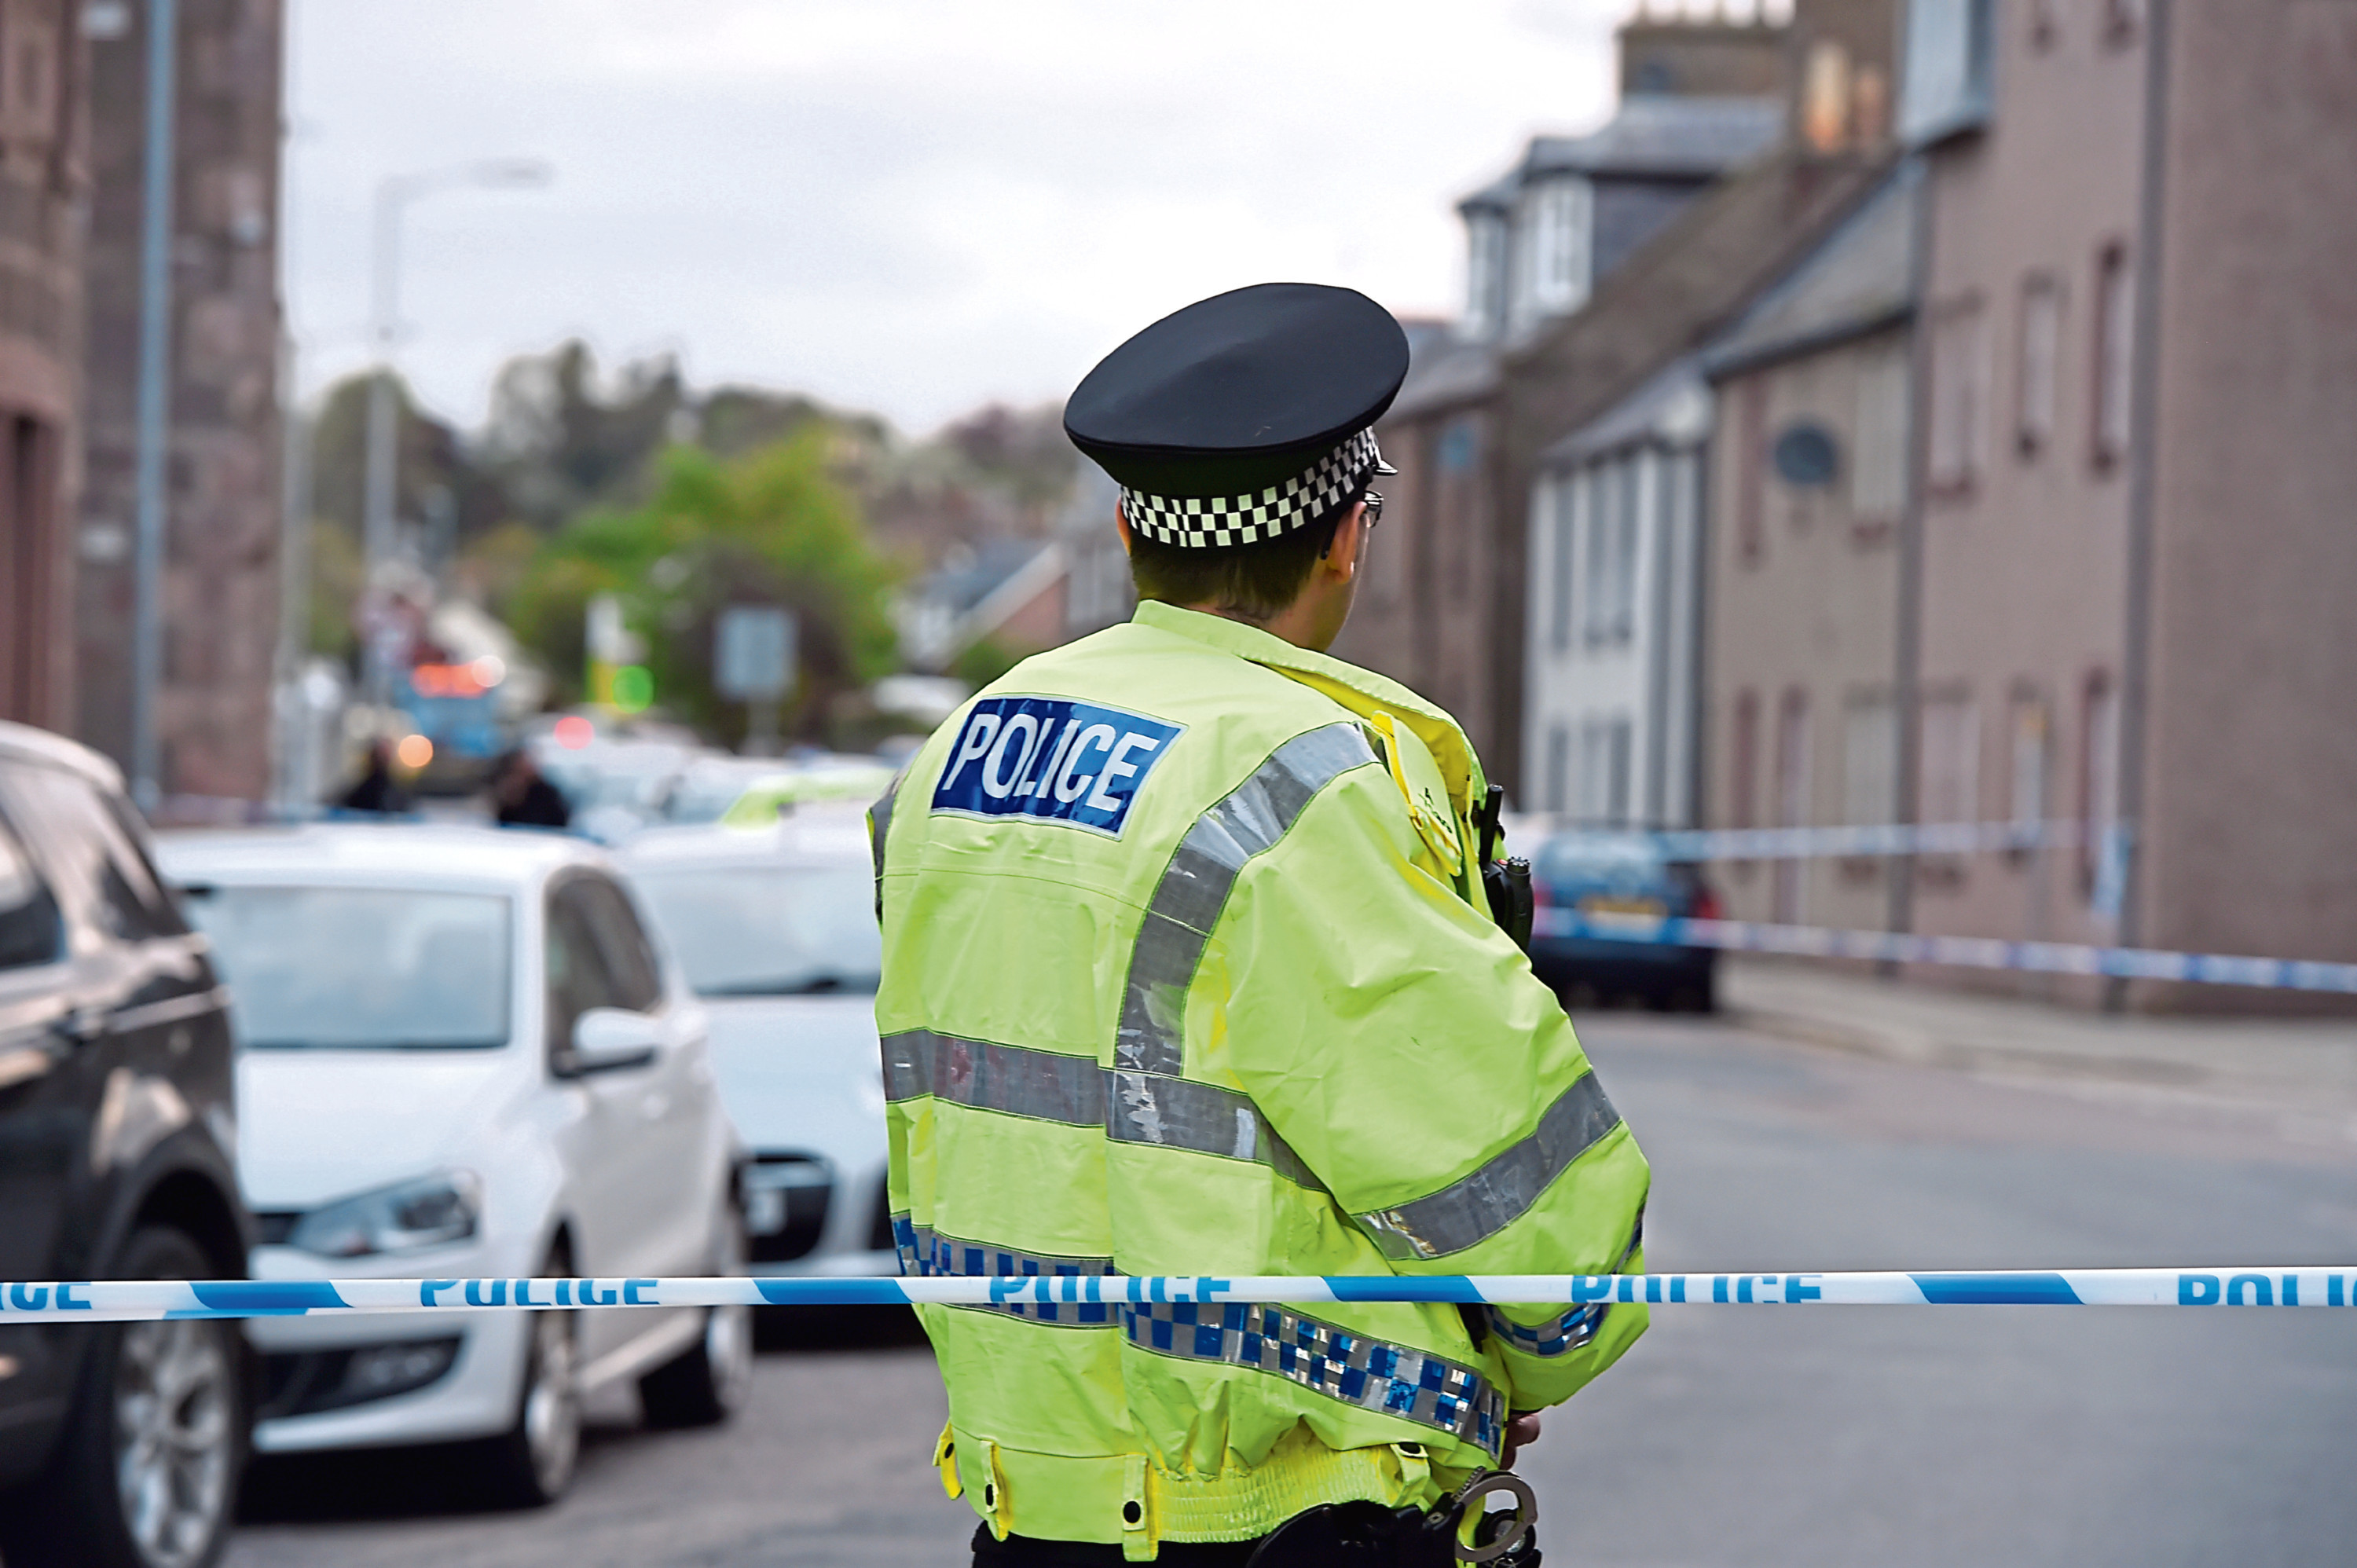 Police at High Street, Stonehaven